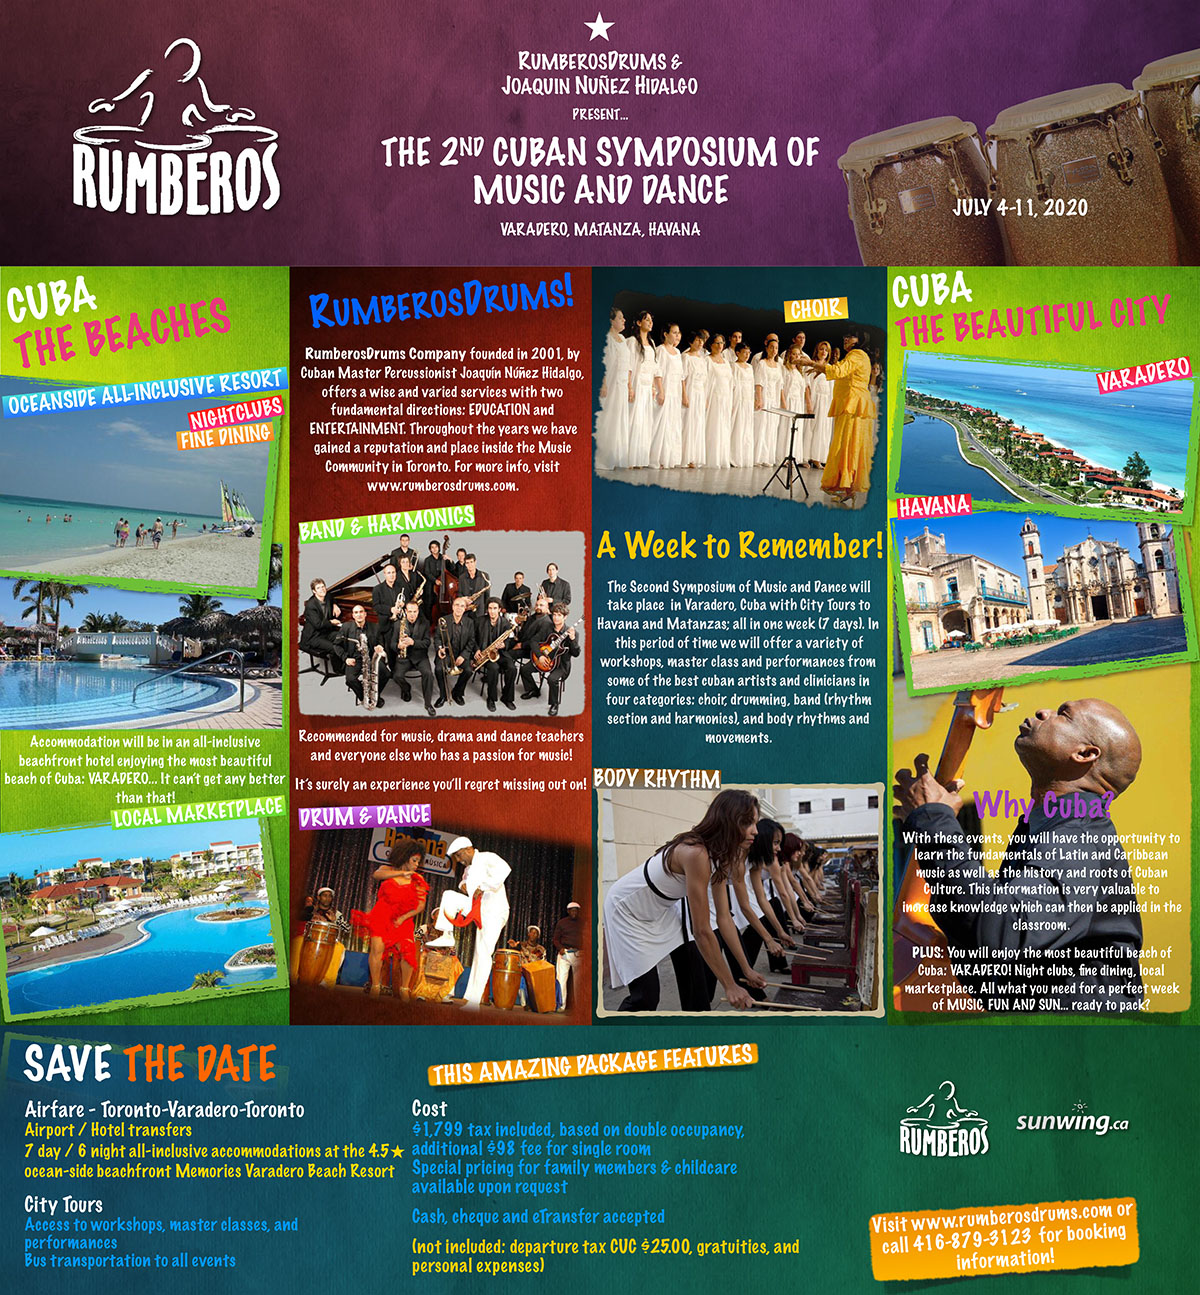 2nd Cuban Symposium of Music and Dance